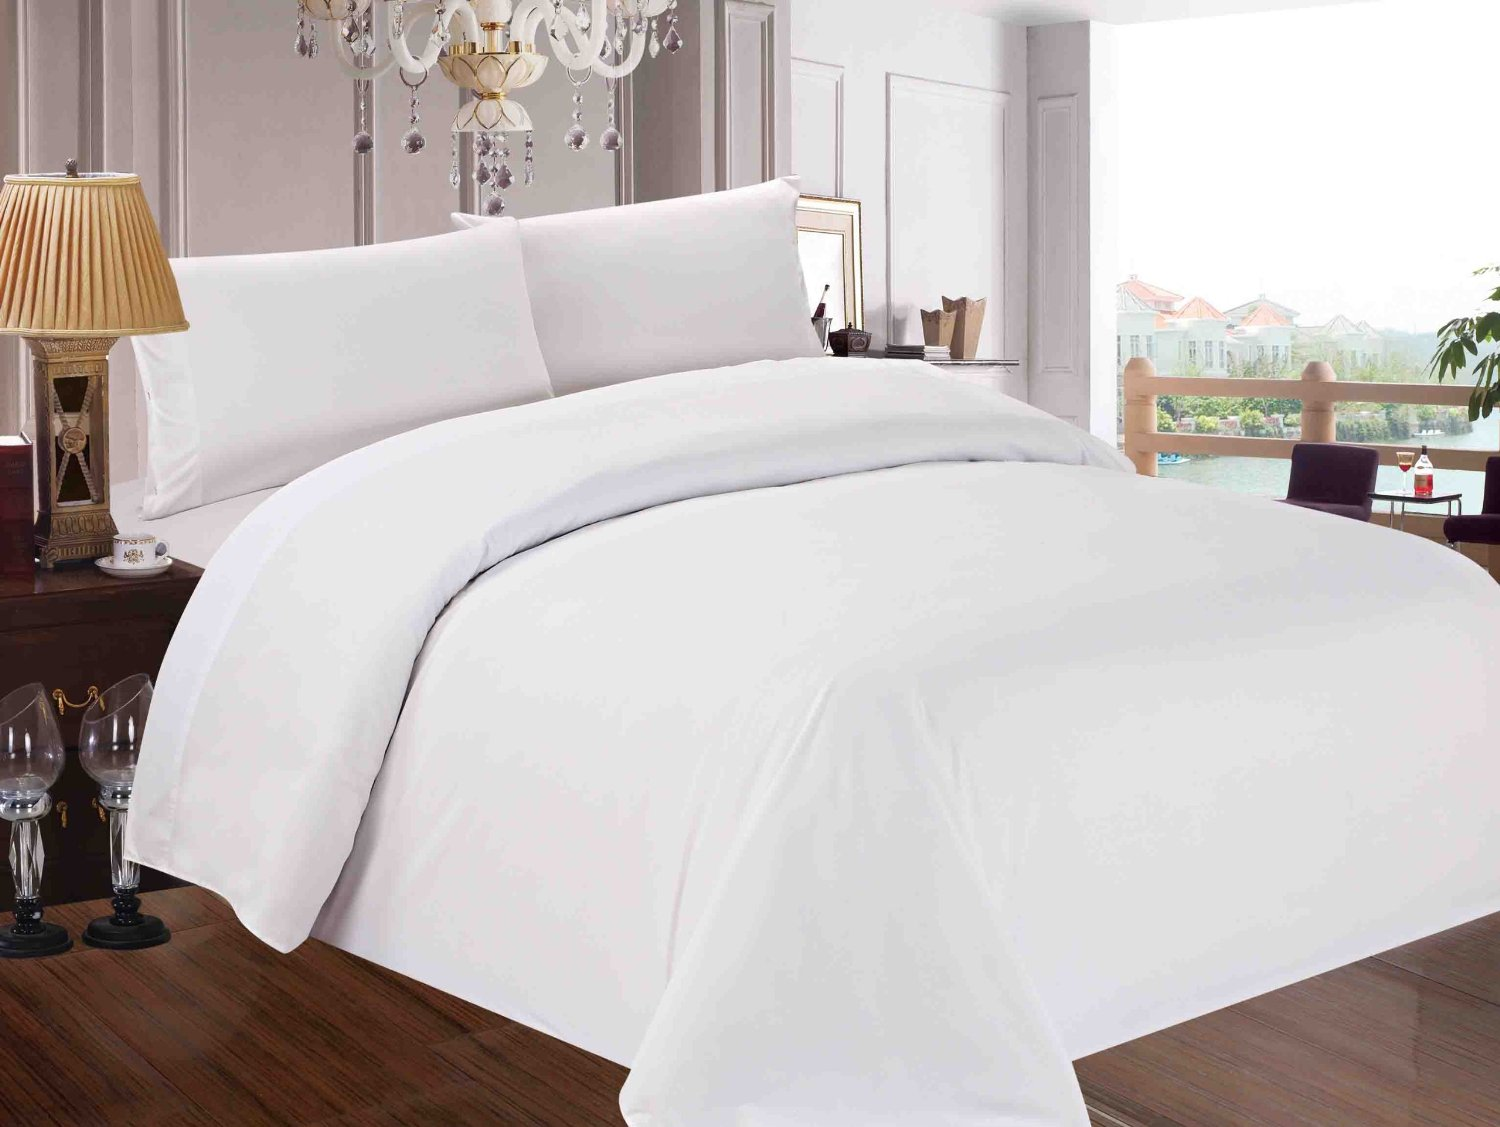 comforters xl dormify hamptonstripe duvet white covers twin duvetcover collections new dorm